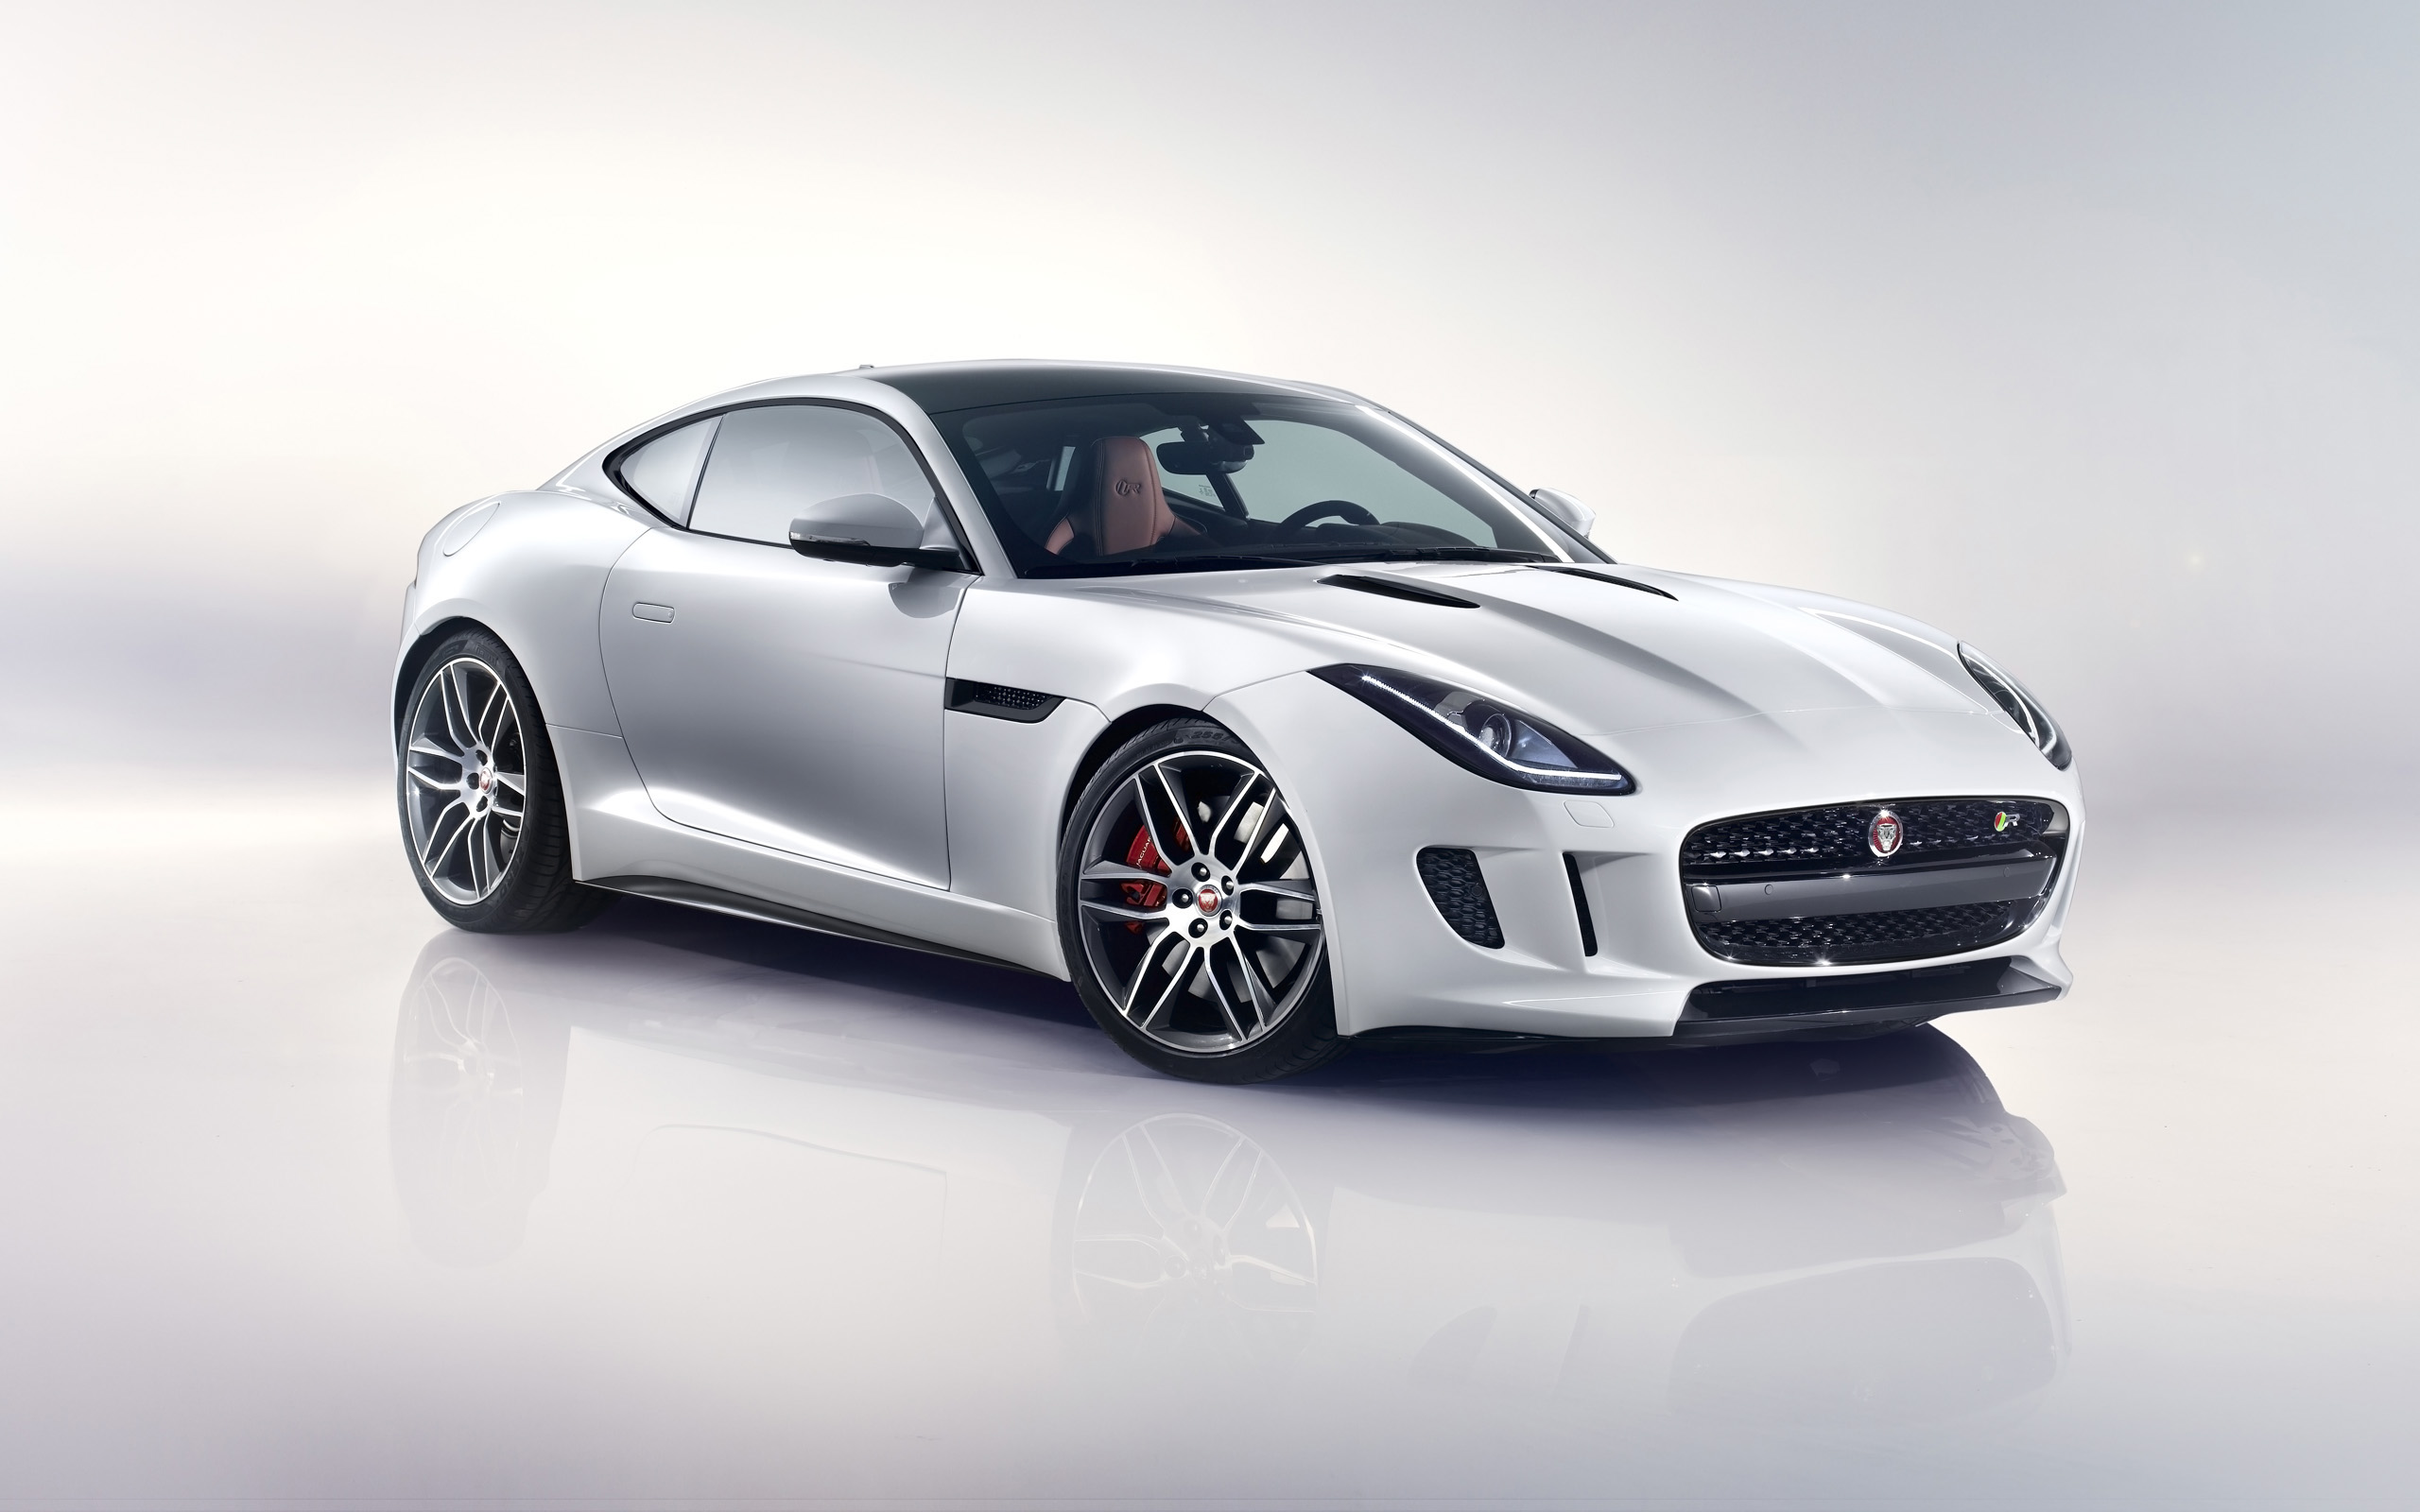 2014 Jaguar F Type R Coupe White Wallpaper HD Car Wallpapers 2560x1600